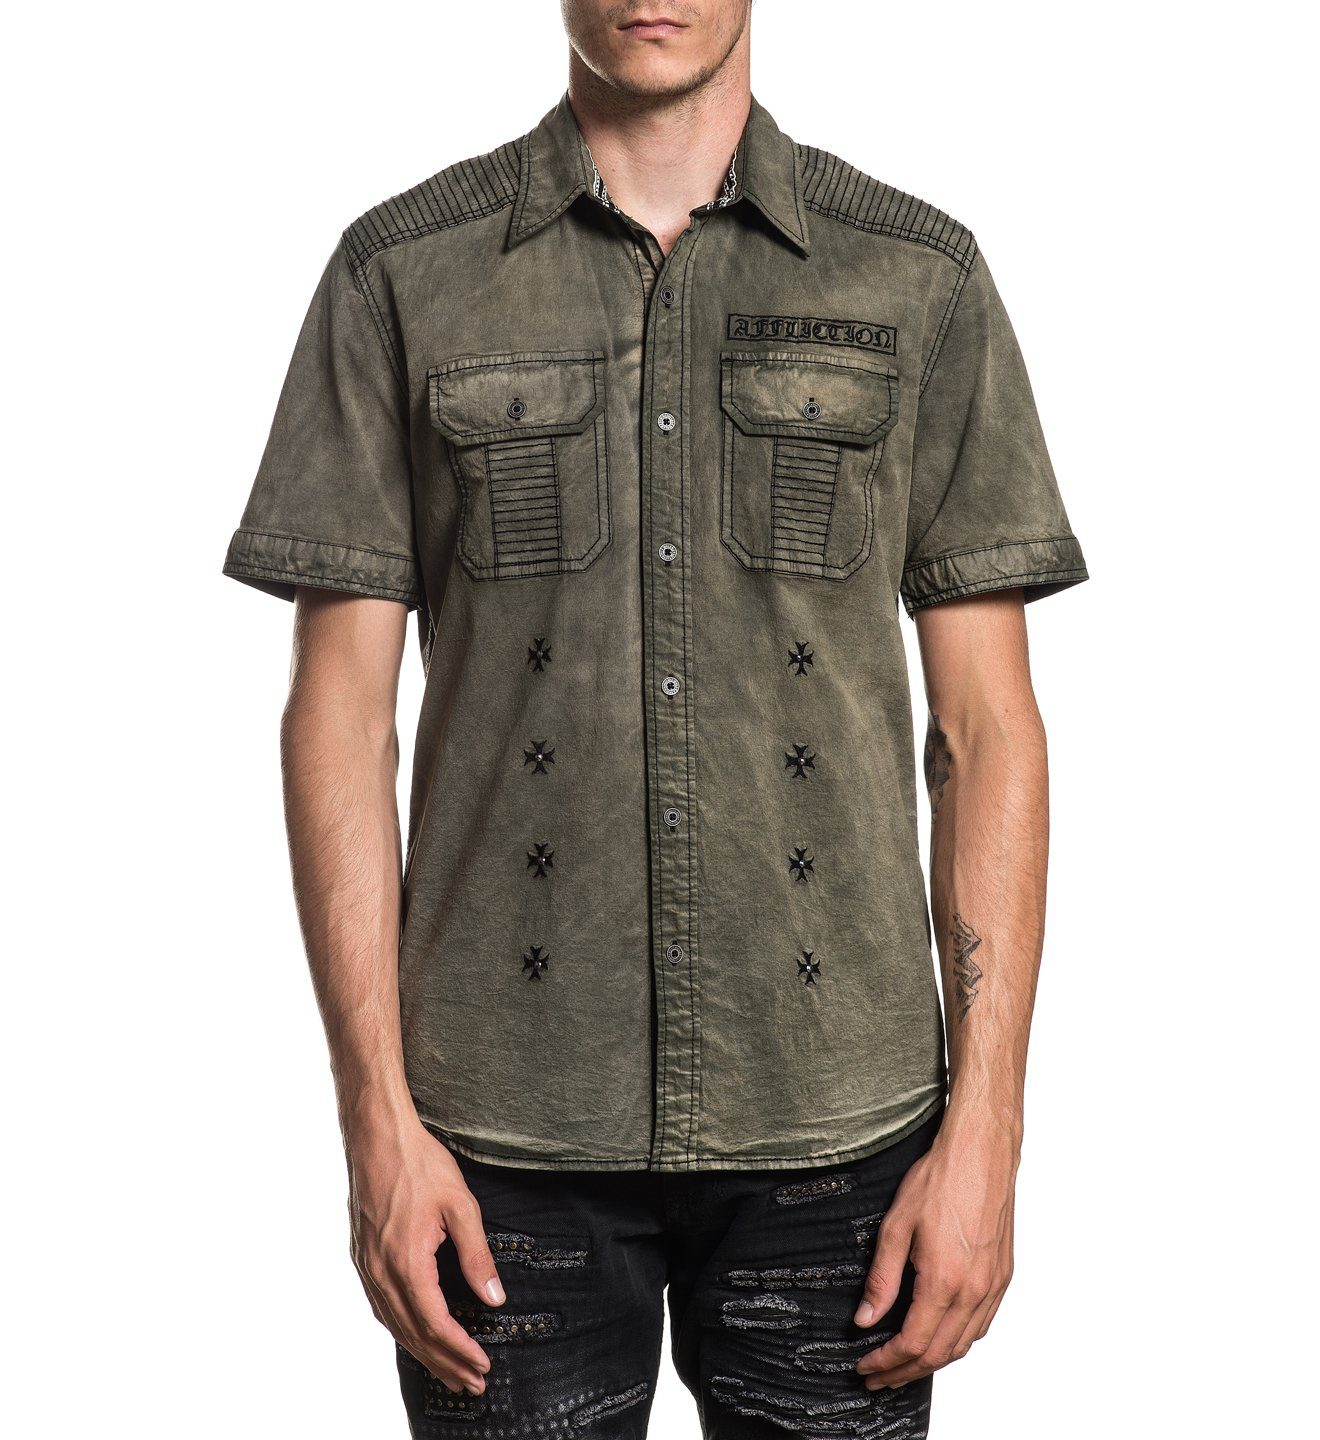 Reprieve - Mens Button Down Tops - Affliction Clothing